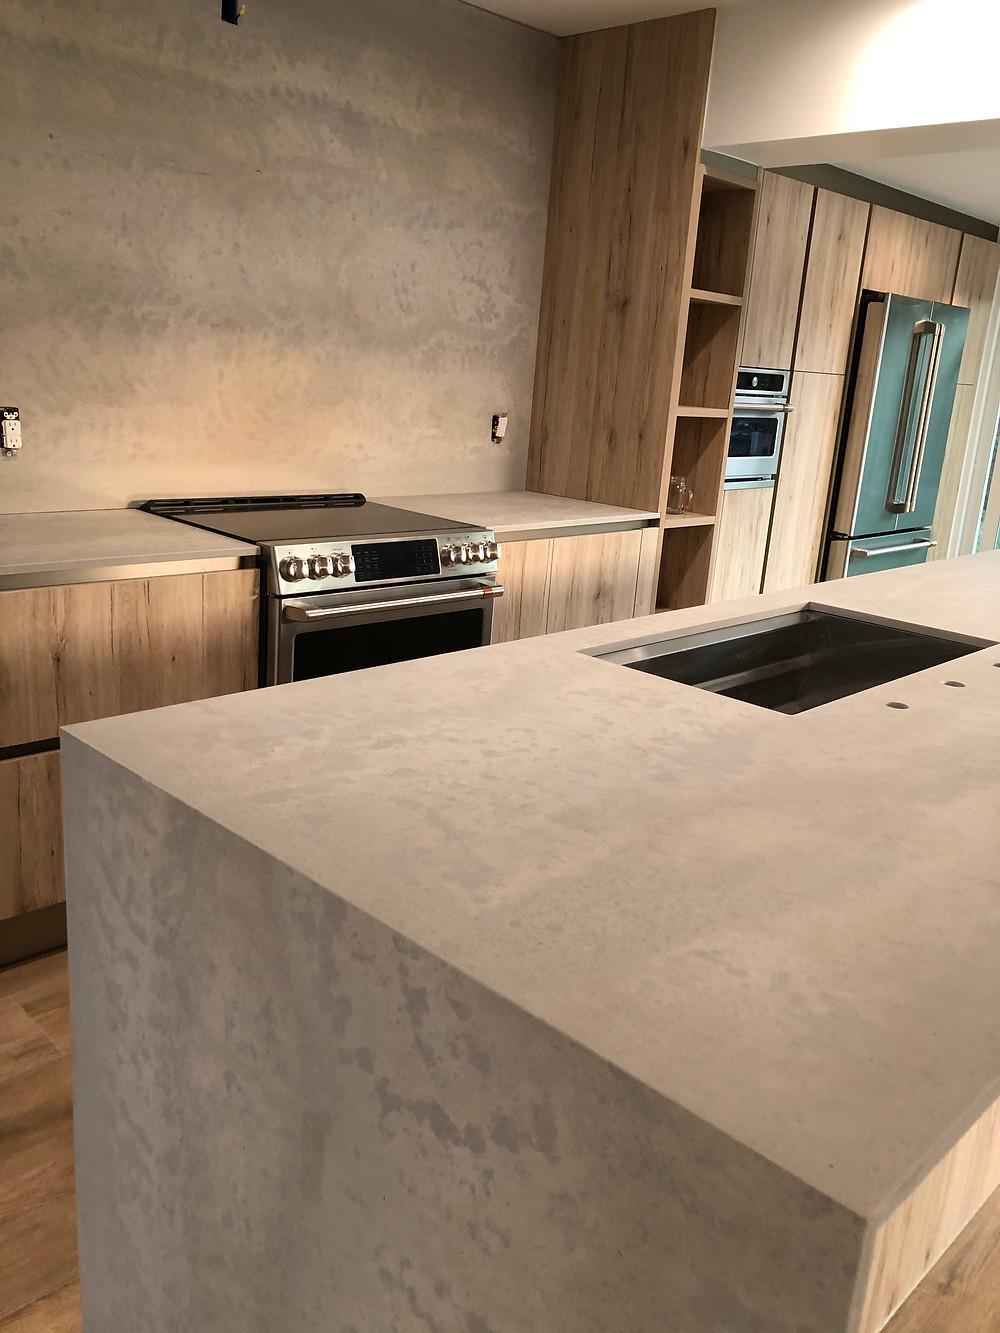 Looking for Caesarstone kitchen countertops feel free to contact Stone and Quartz LLC | Boca Raton FL